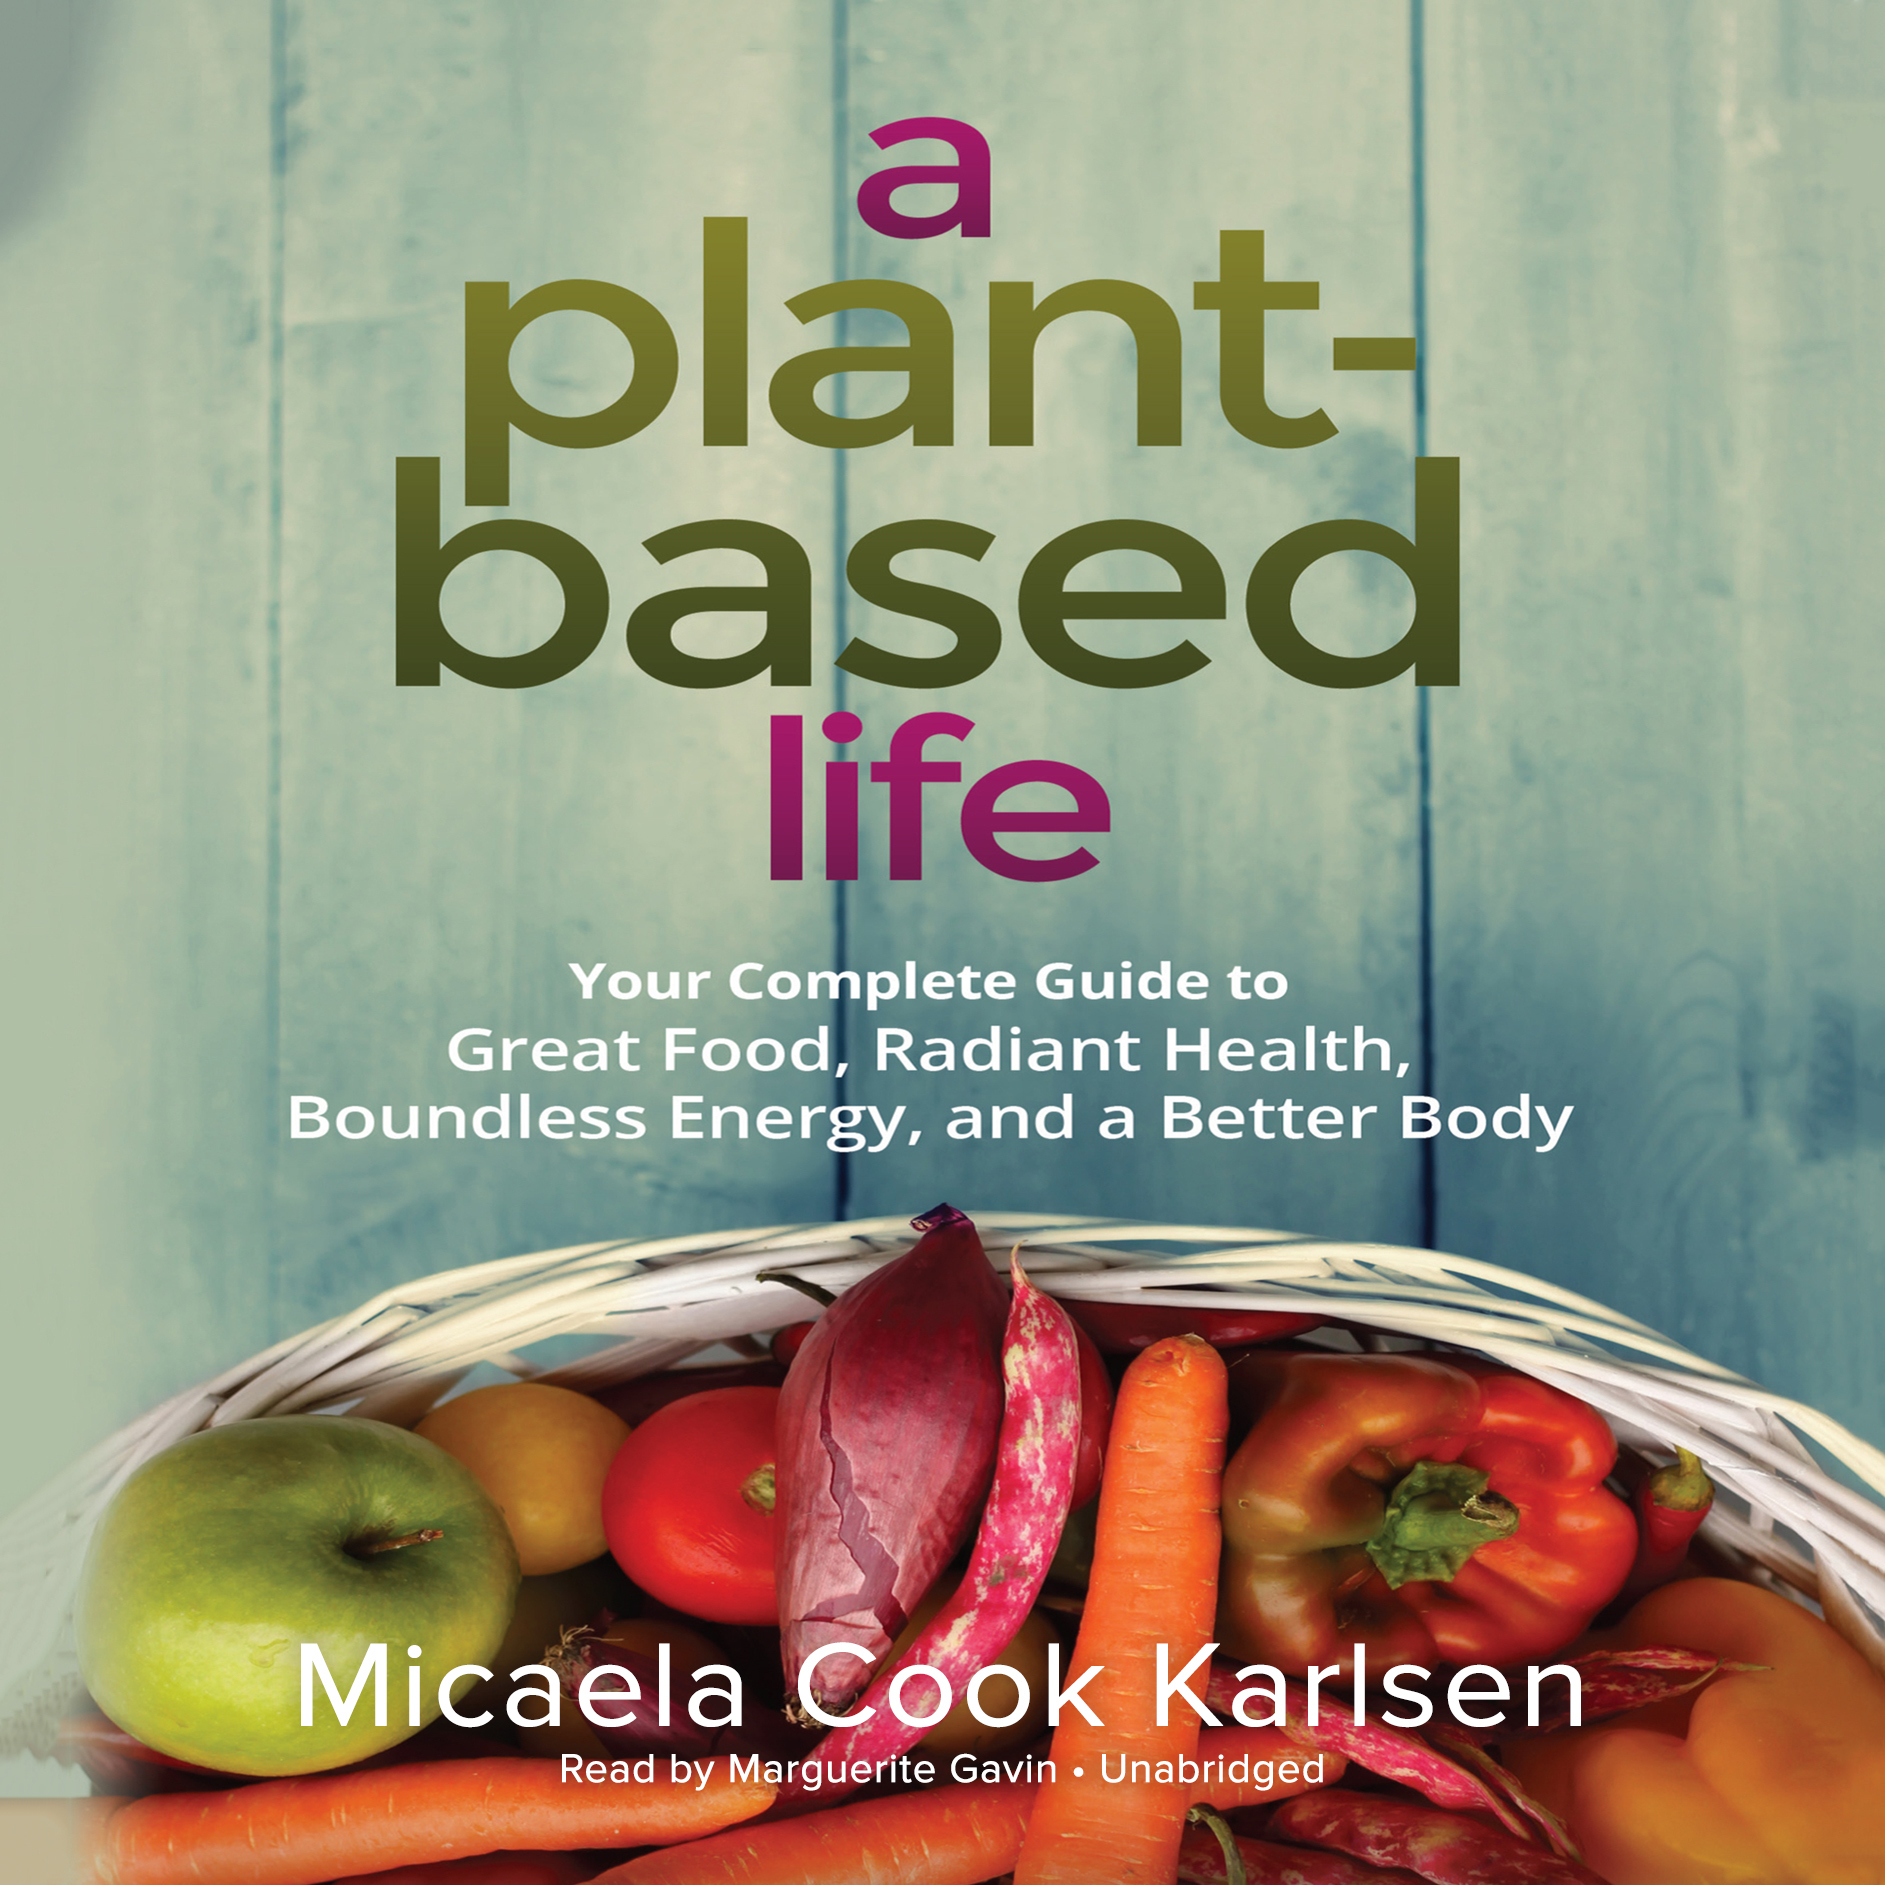 Printable A Plant-Based Life: Your Complete Guide to Great Food, Radiant Health, Boundless Energy, and a Better Body Audiobook Cover Art